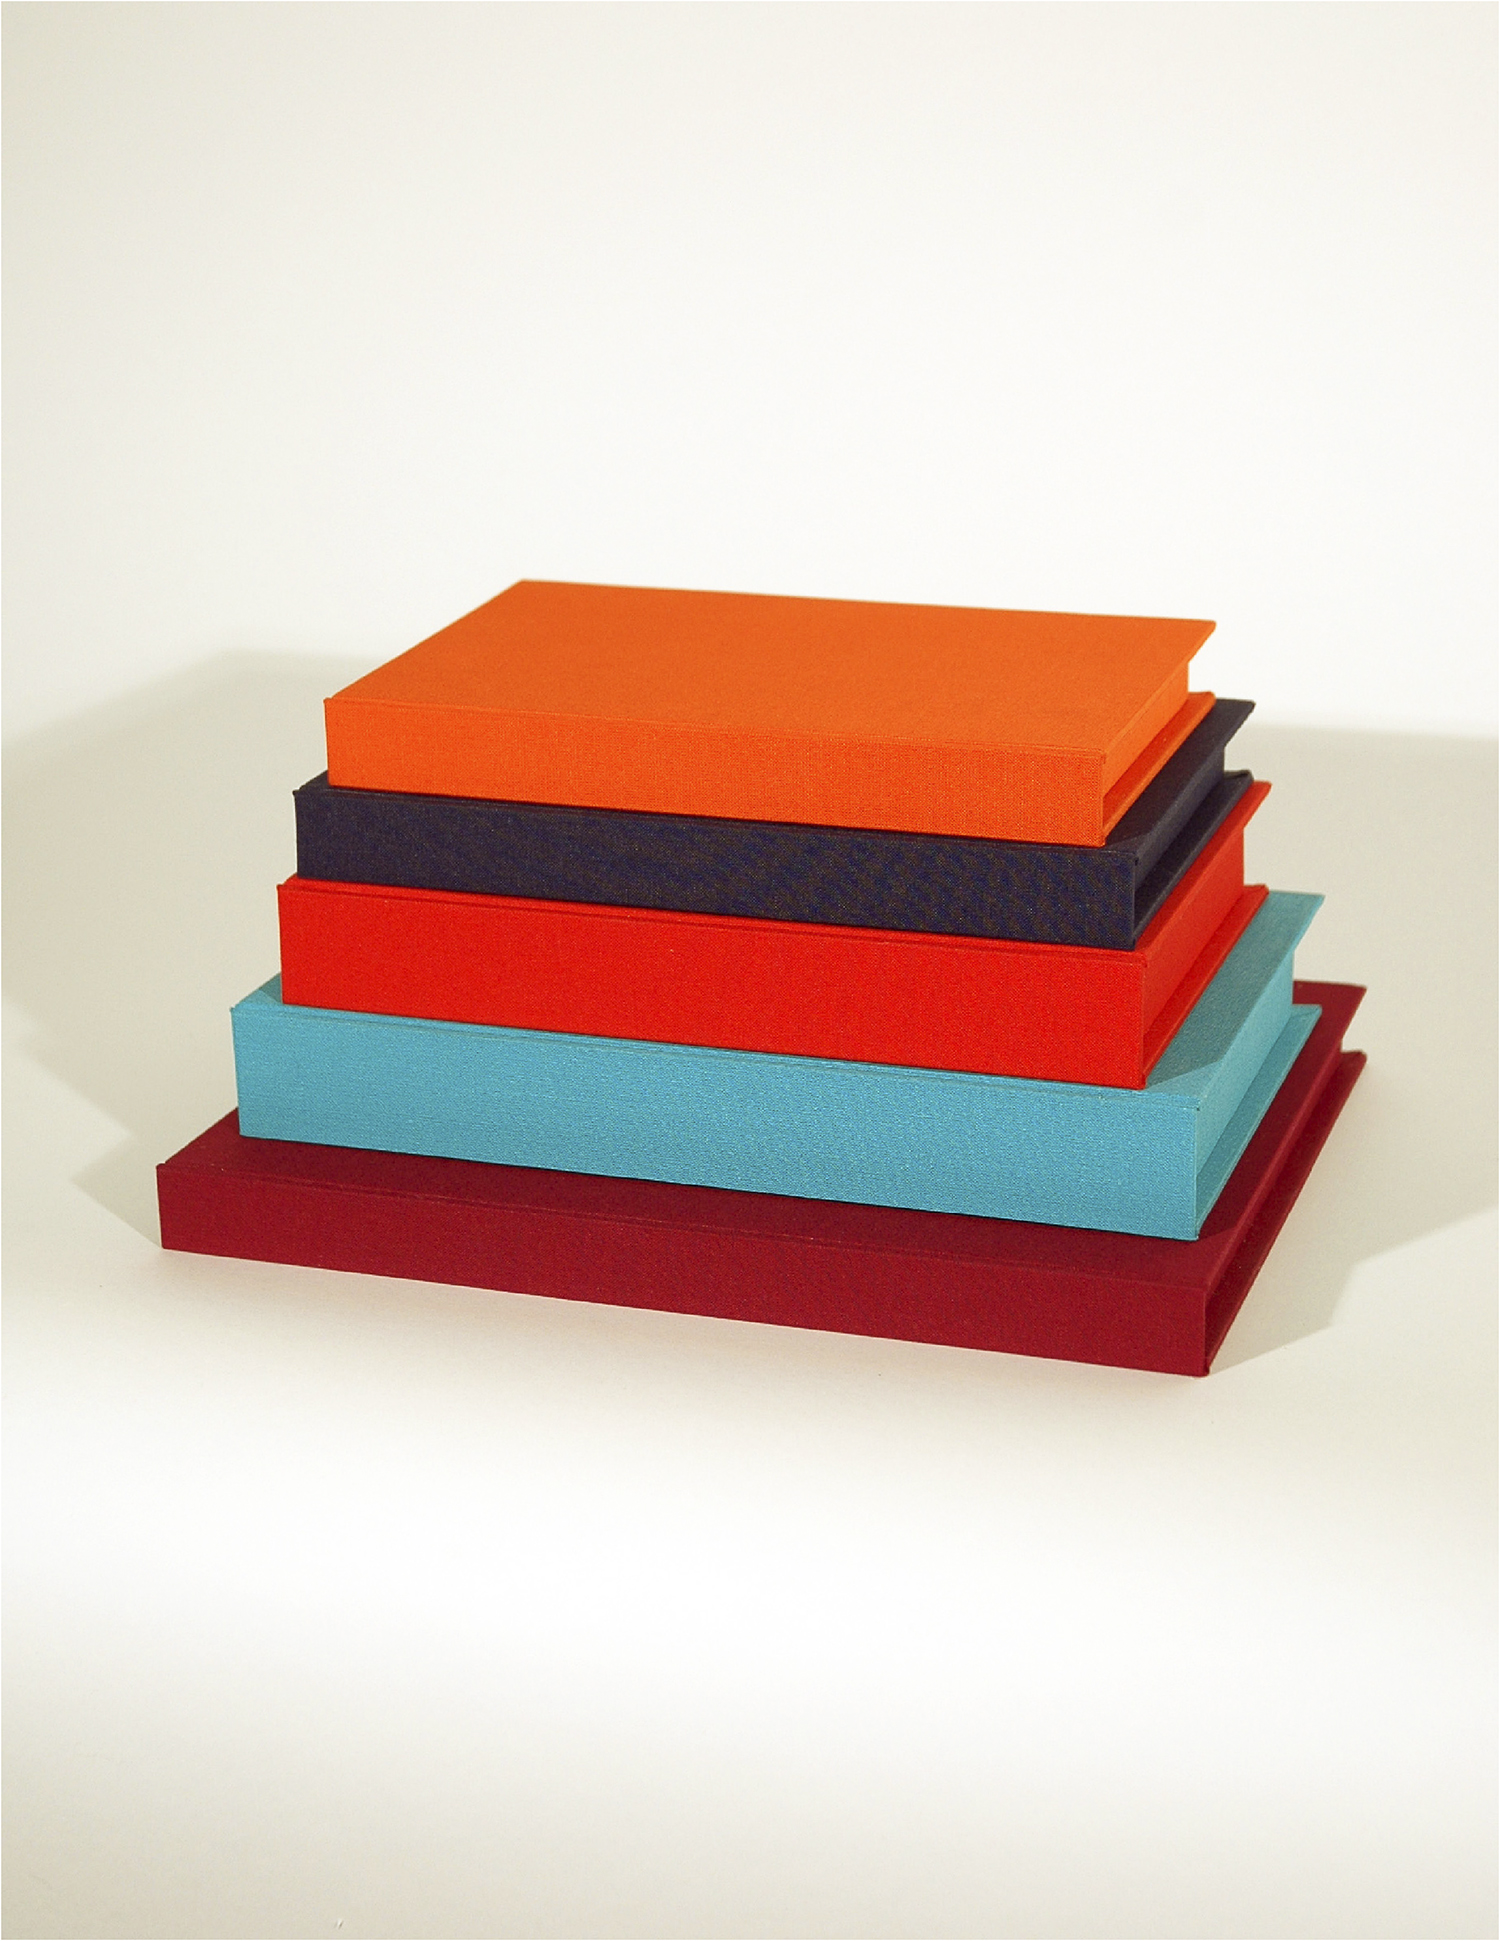 Mario: The Cop's Monument; Bookbinding Board and Fabric with Entombed Books; Dimensions Variable; 2007